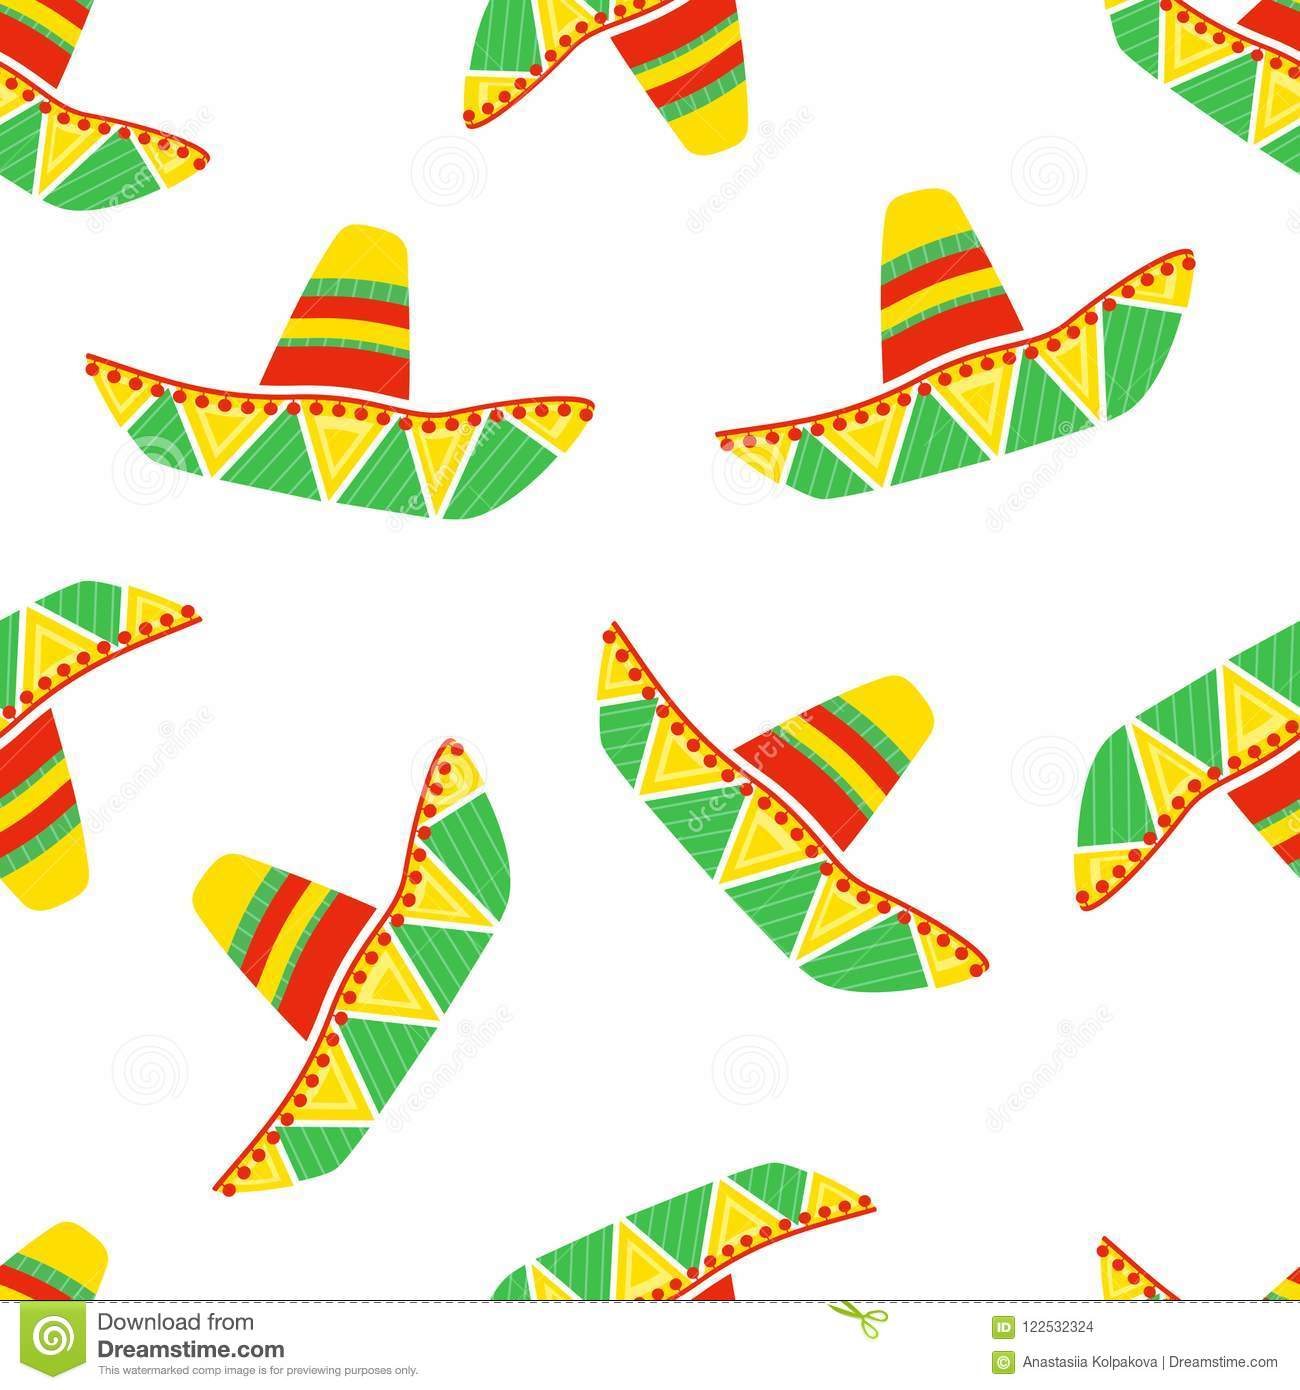 Colorful Mexican Sombrero Vector Seamless Pattern Stock Vector ... dc053f5c9f1